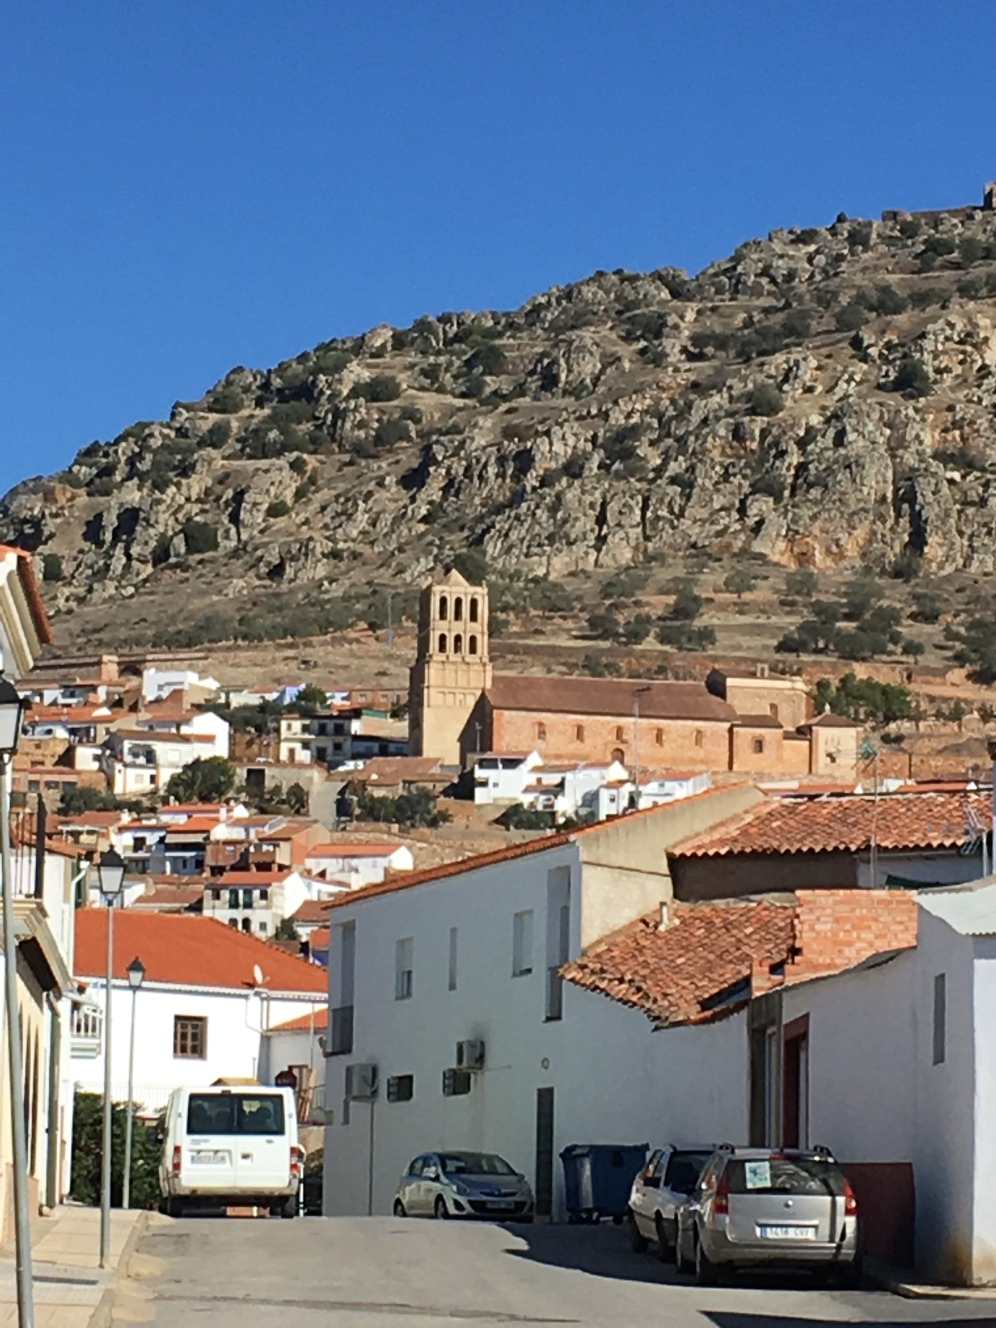 View of Hornachos, Extremadura, Spain. I go on walks here in between classes. It's a beautiful and charismastic little town!